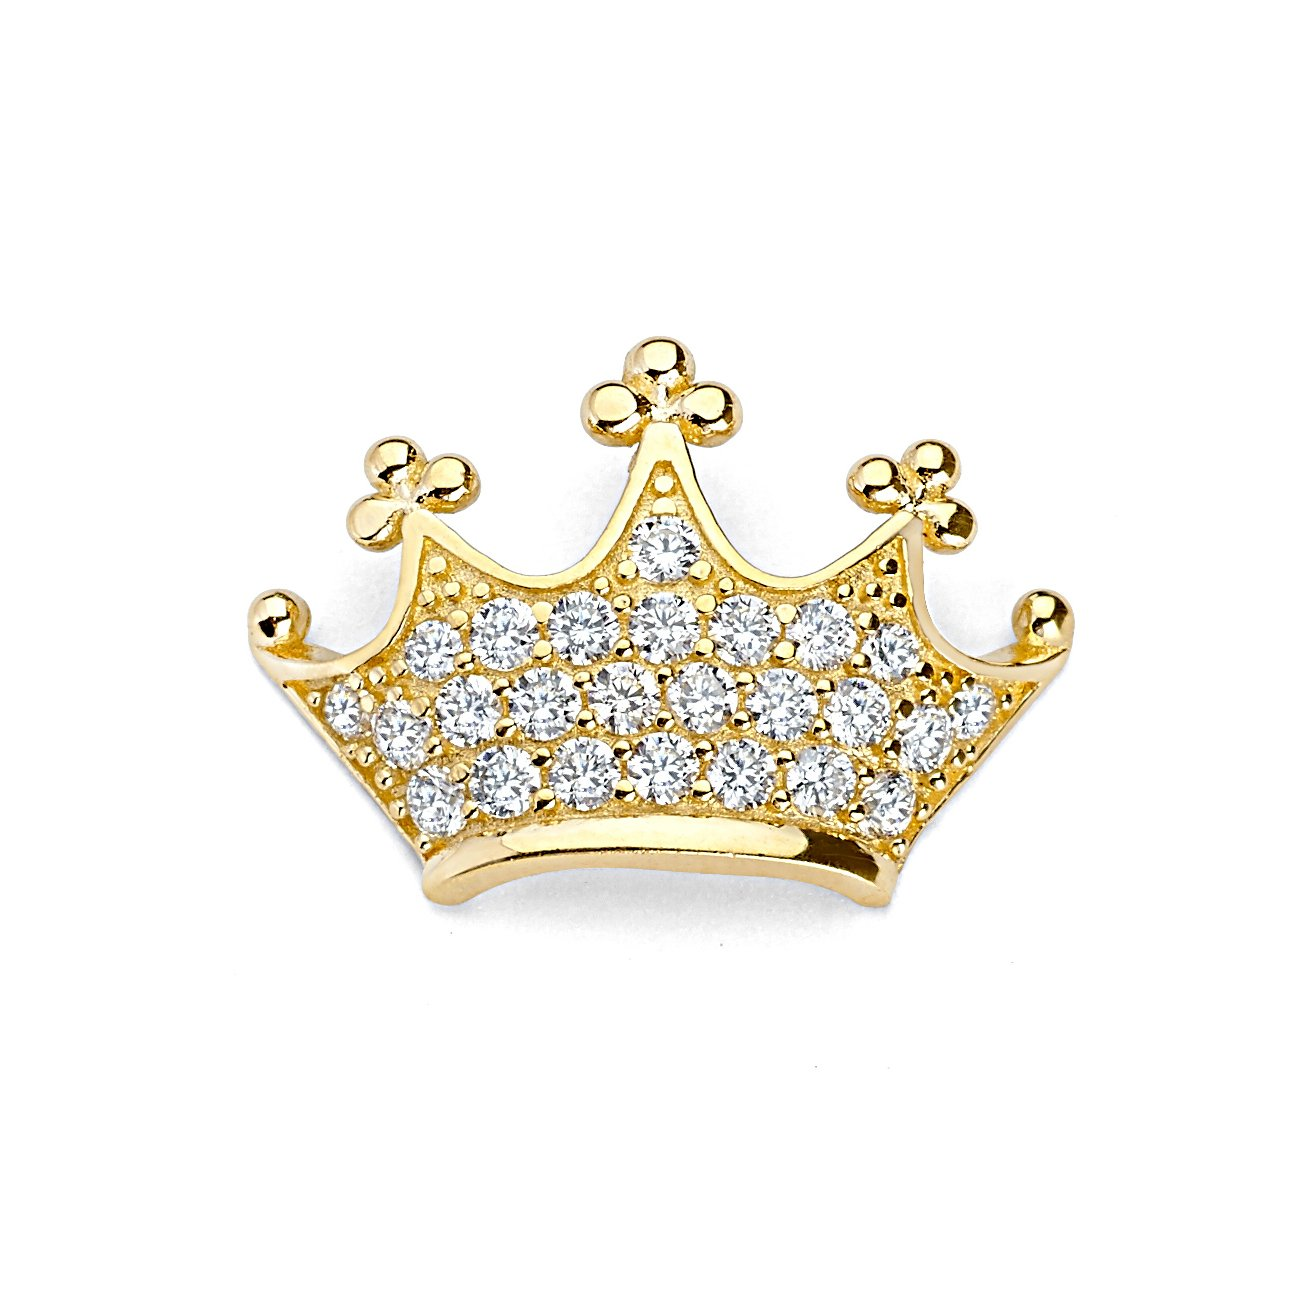 14k Yellow Gold Crown Charm Pendant with 18 Rolo Chain 20mm x 20mm with Paved White CZ Accents